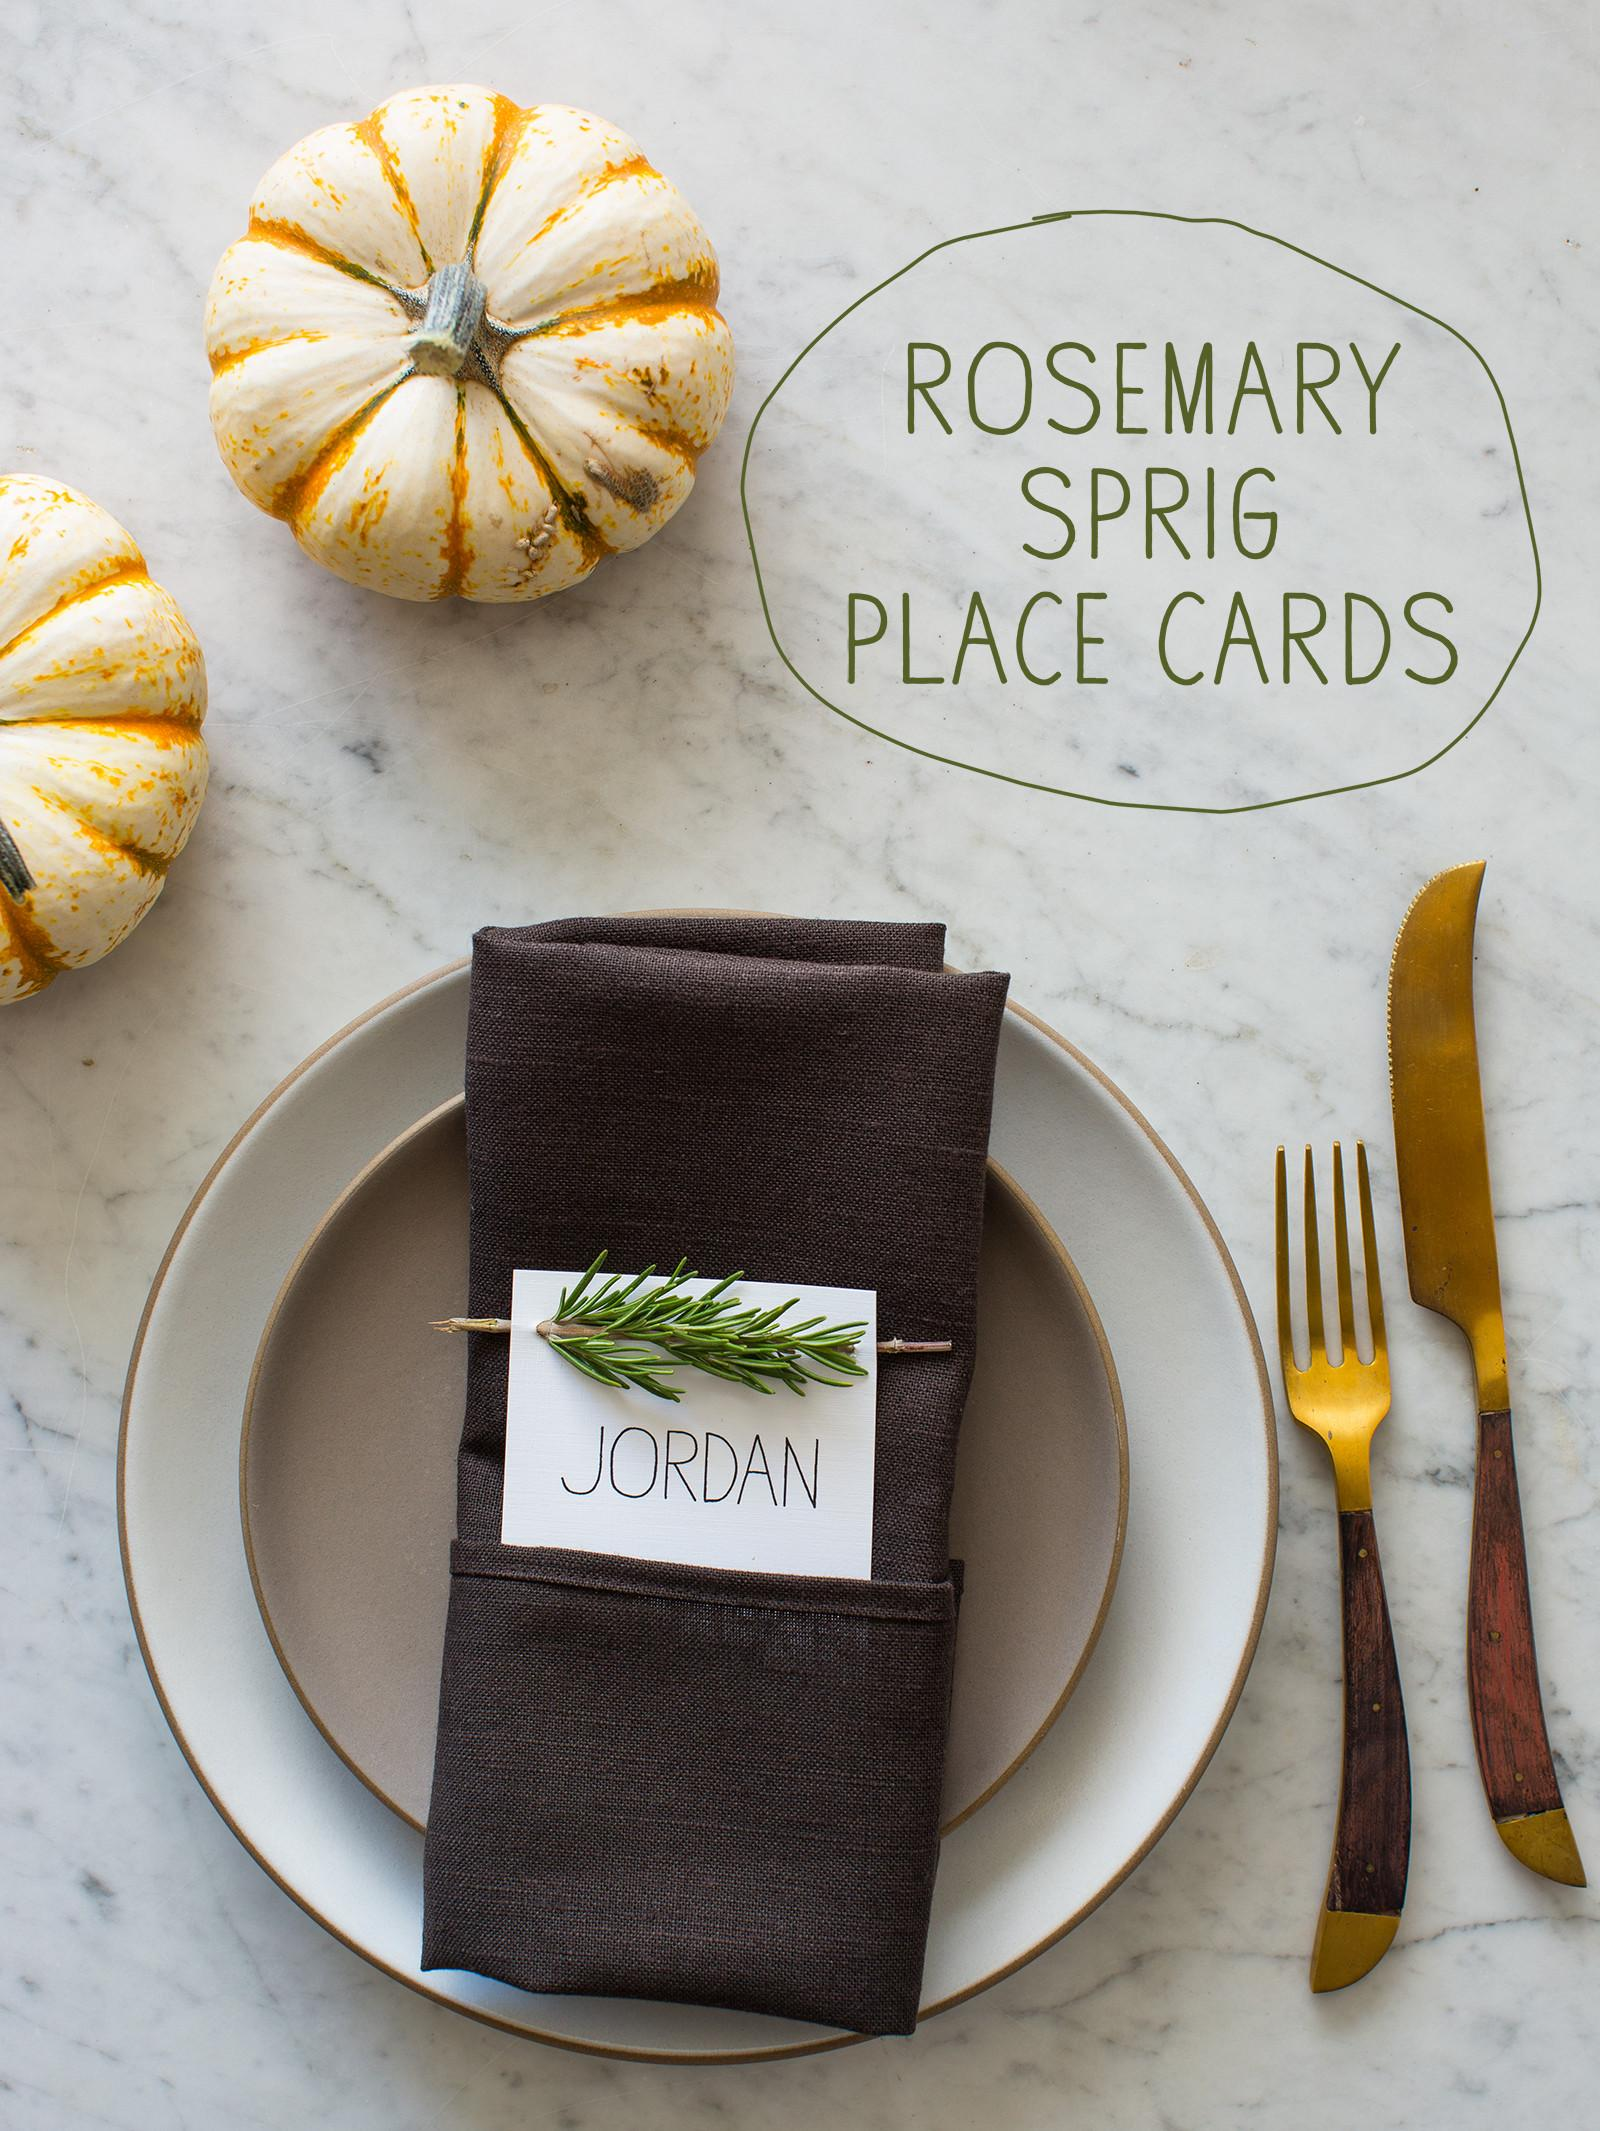 Rosemary Sprig Place Cards Diy Spoon Fork